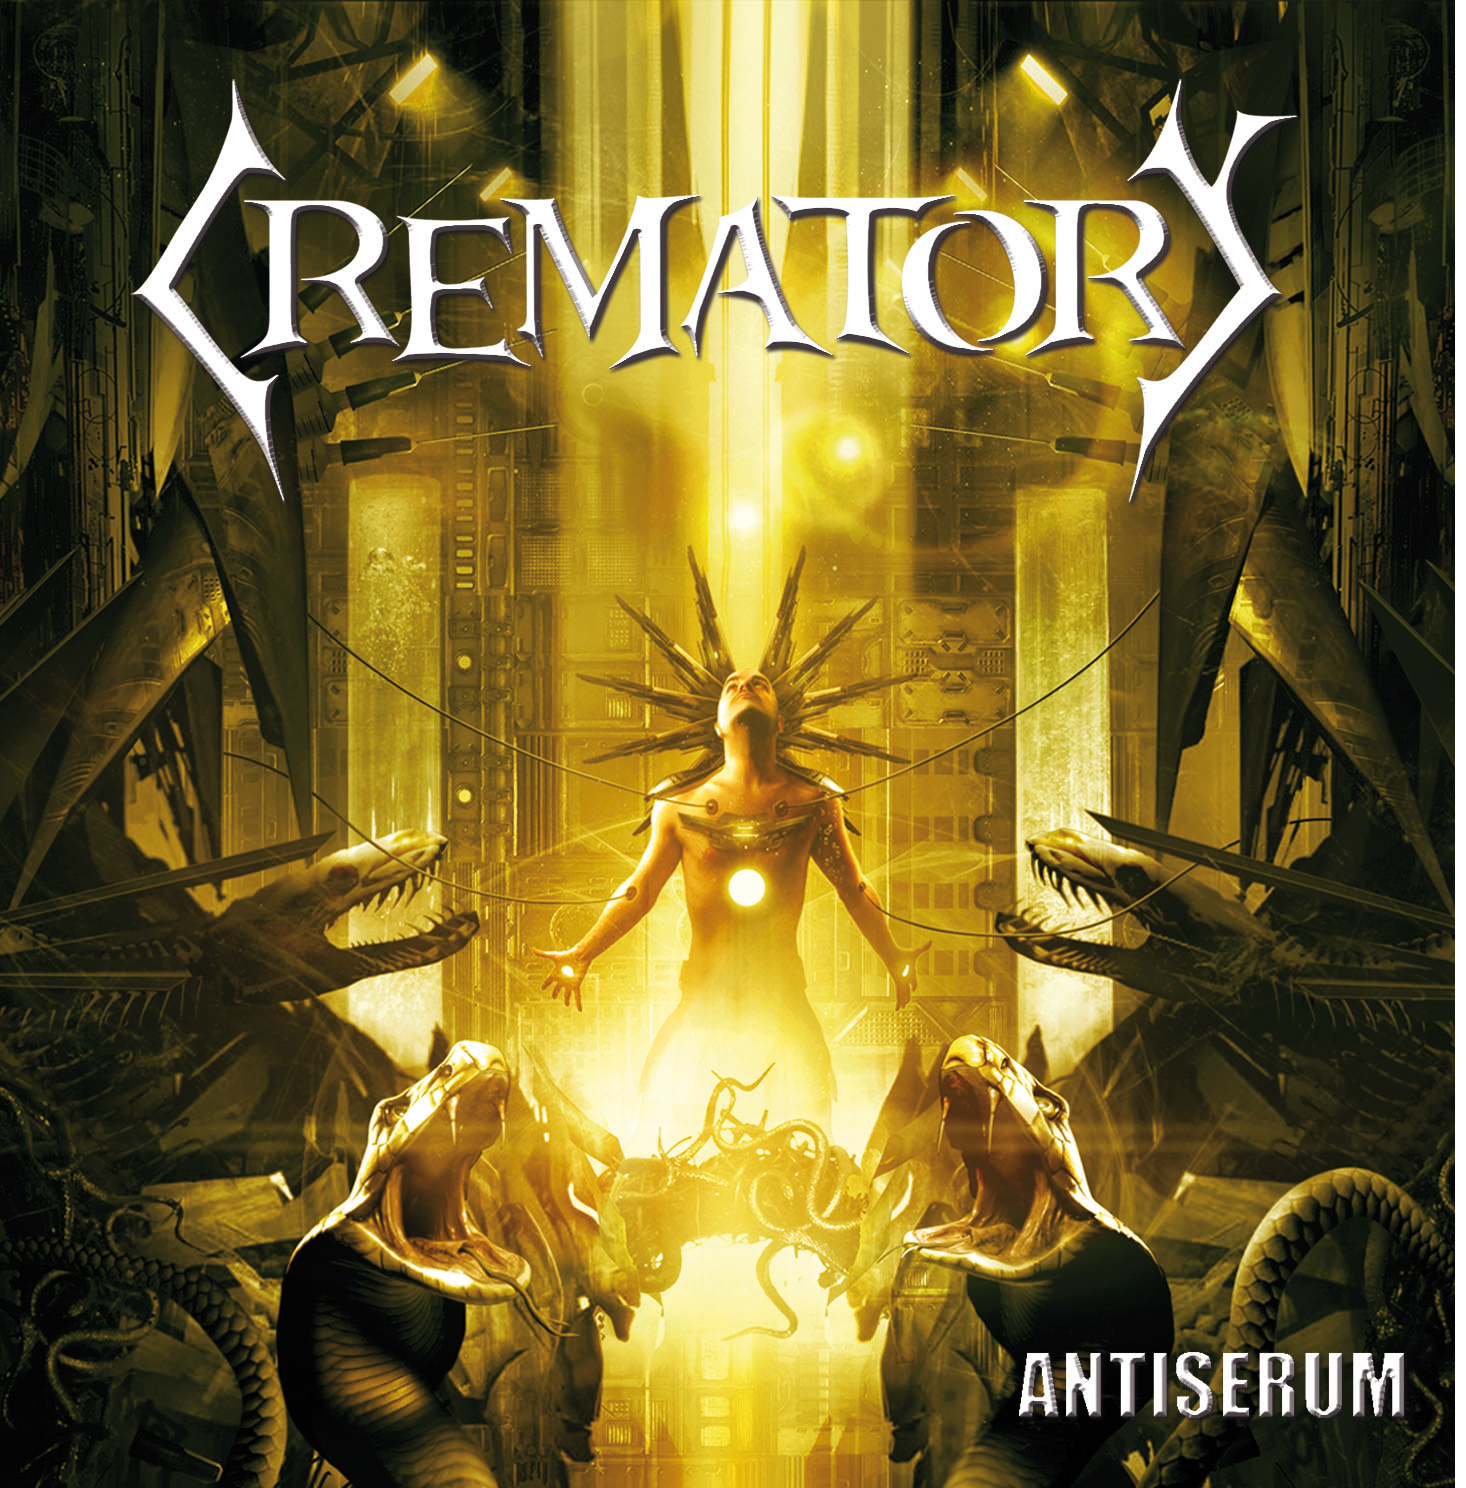 Crematory – Antiserum Review